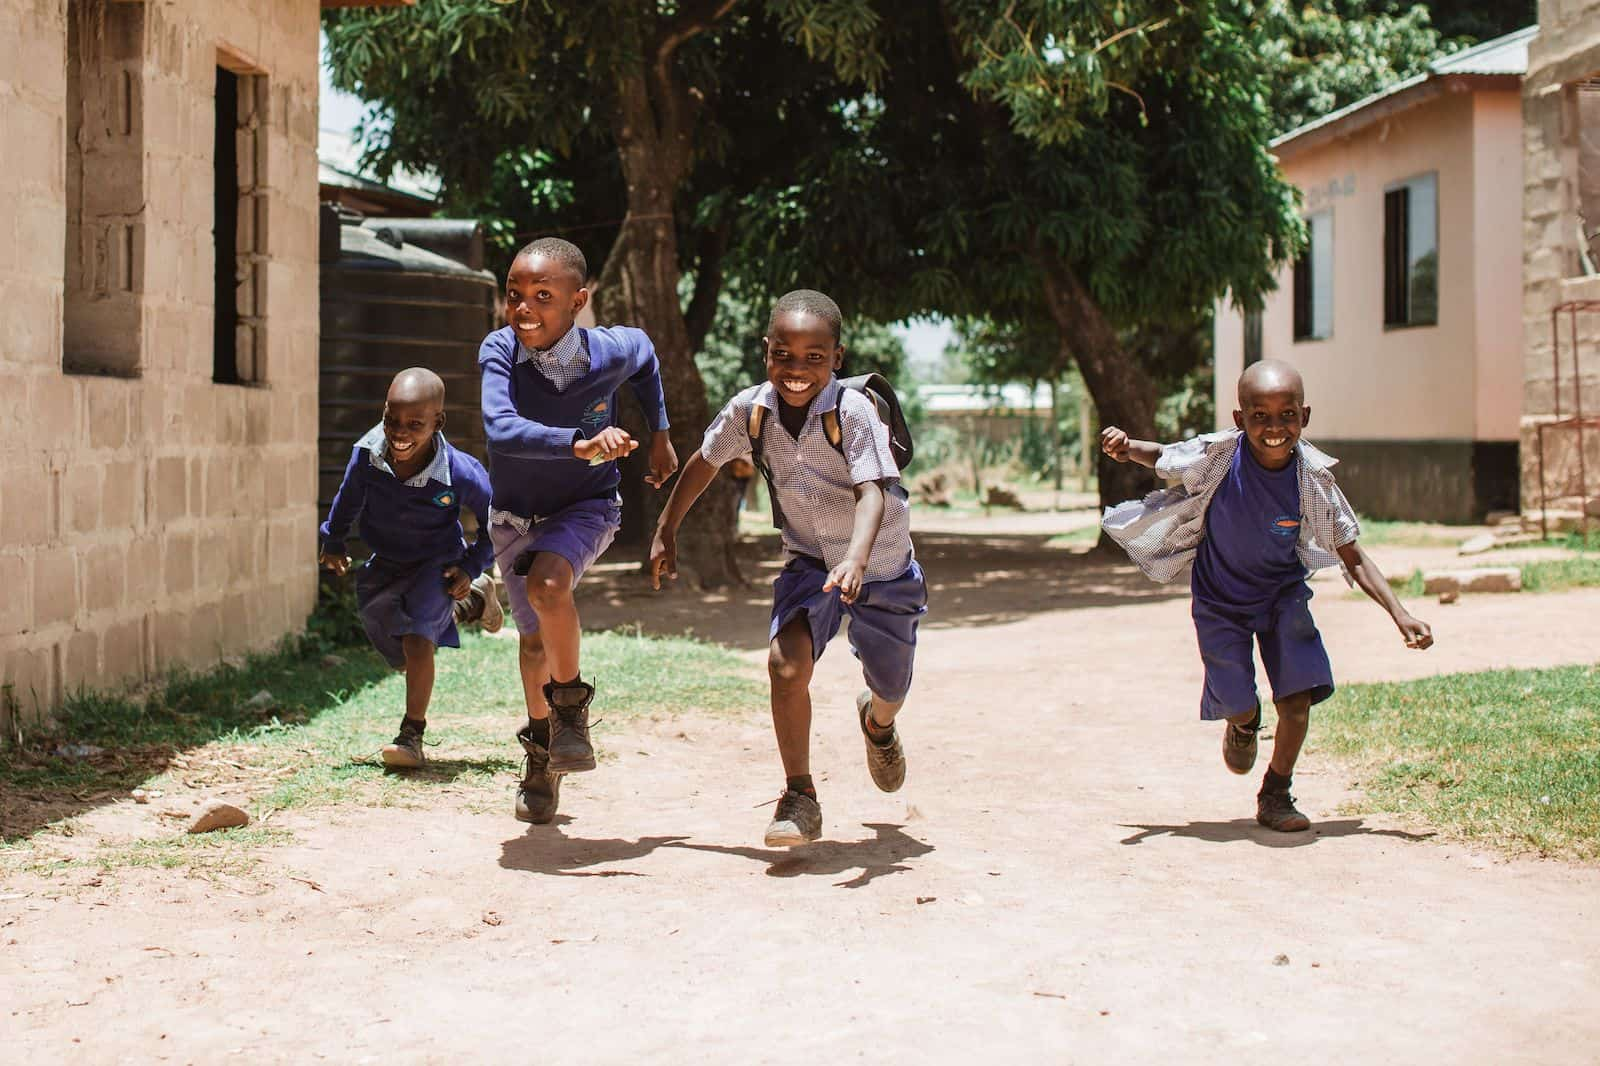 Four boys in Tanzania wearing purple school uniforms run towards the camera, smiling, down a dirt road.